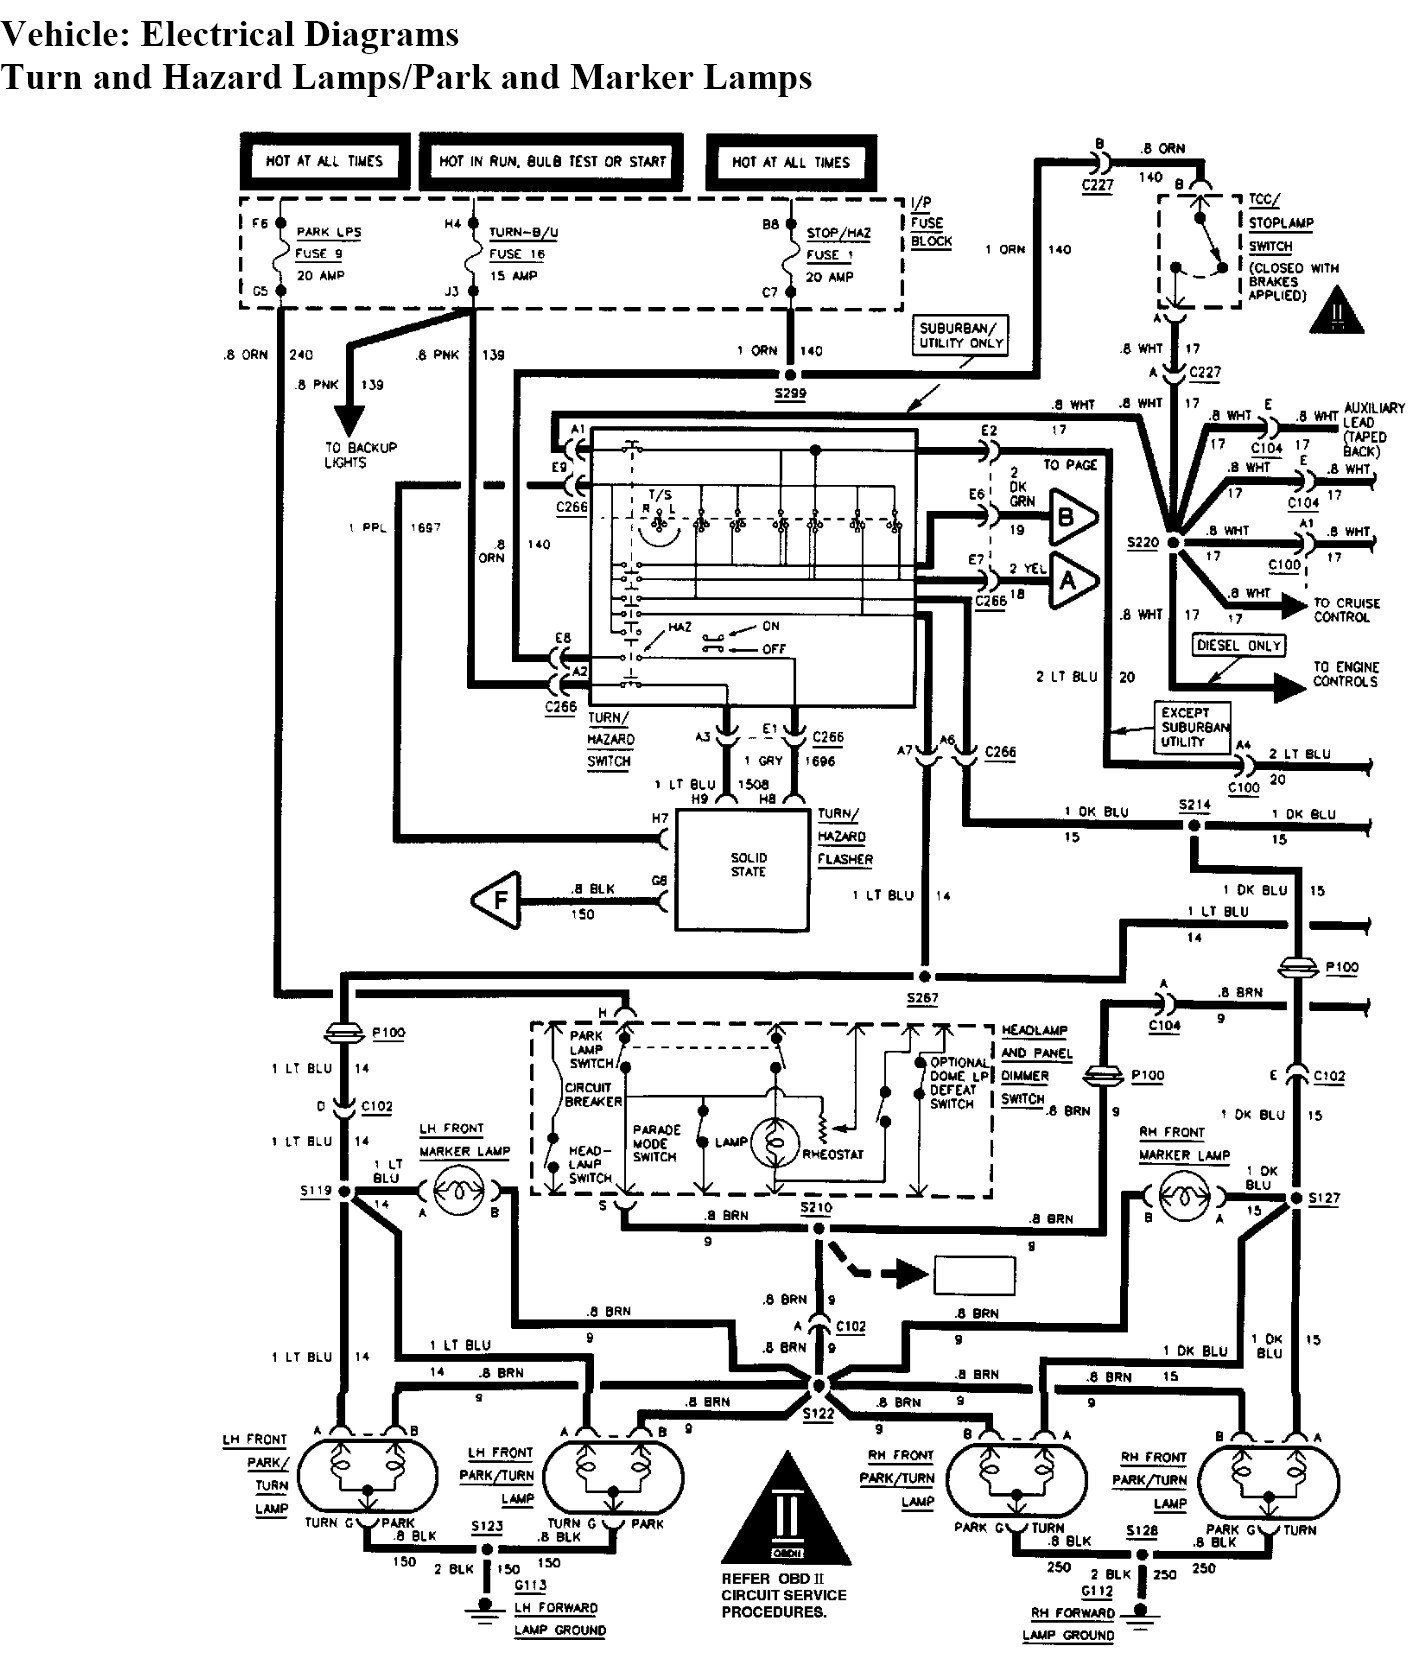 1999 jeep cherokee headlight wiring diagram